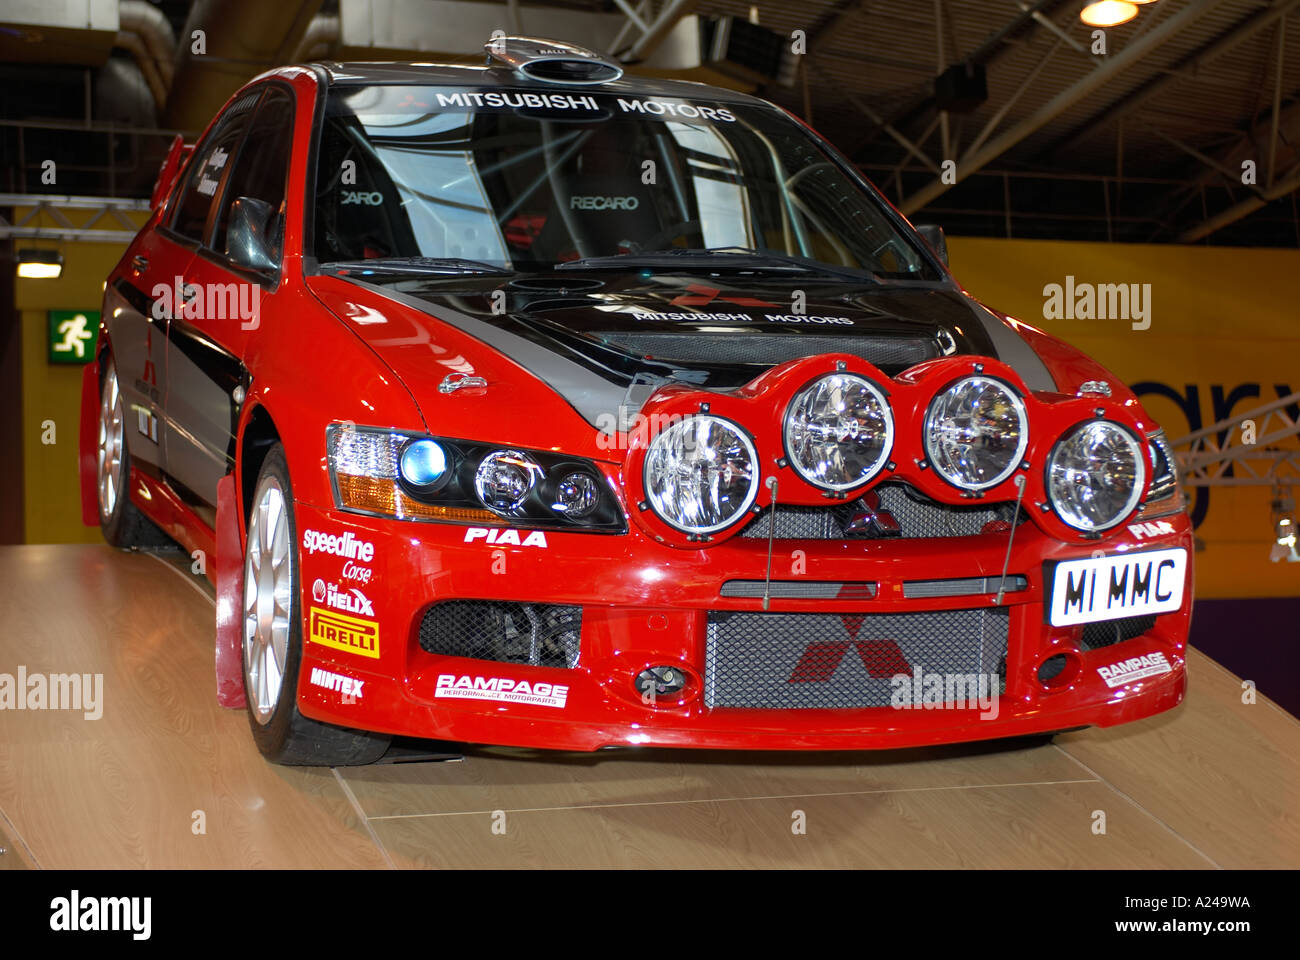 Mitsubishi Lancer Evo rally car, Autosport show 2006 Stock Photo ...